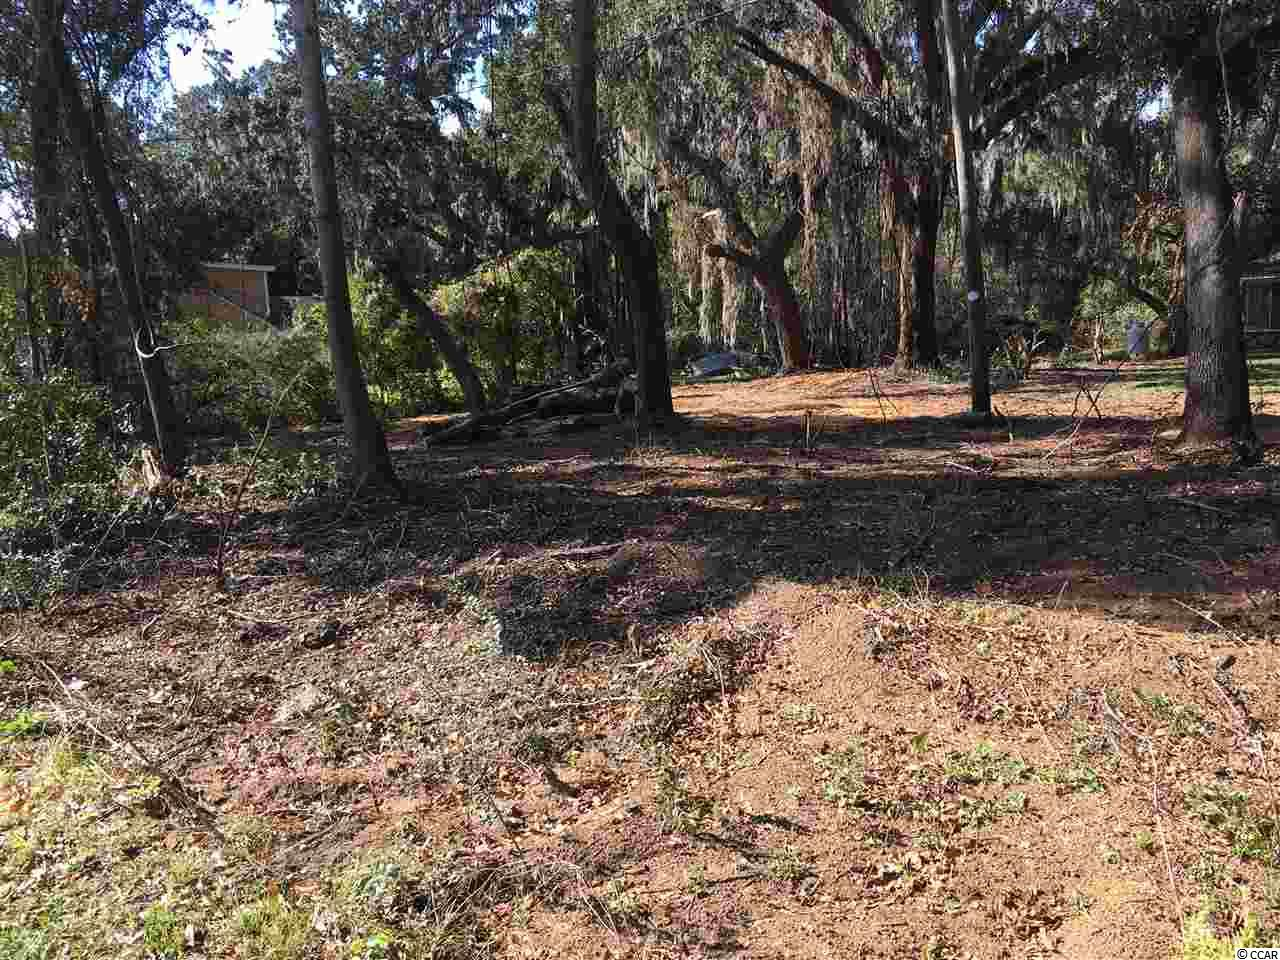 """This lot is linked to two other lots which are all 3 rezoned Neighborhood Commercial. The property includes two frontage lots which total approx. 150 feet on Ocean Hwy and extend back 1.5 Acres also zoned Neighborhood Commercial.  Beyond that, where the 12.47 Acre Track is, it extends all the way back to Parkersville Road, and that part remains zoned Residential.  They are all linked to provide access into THE 1.5 NC zoned Acres behind them as an ingress/egress. When Agent is presenting an offer, Purchasers should note that the two frontage lots and 1.5 Acres will BE COMBINED AND CONSIDERED ONLY """"FOR SALE AS ONE PARCEL"""" WITH 3 CONTRACTS."""